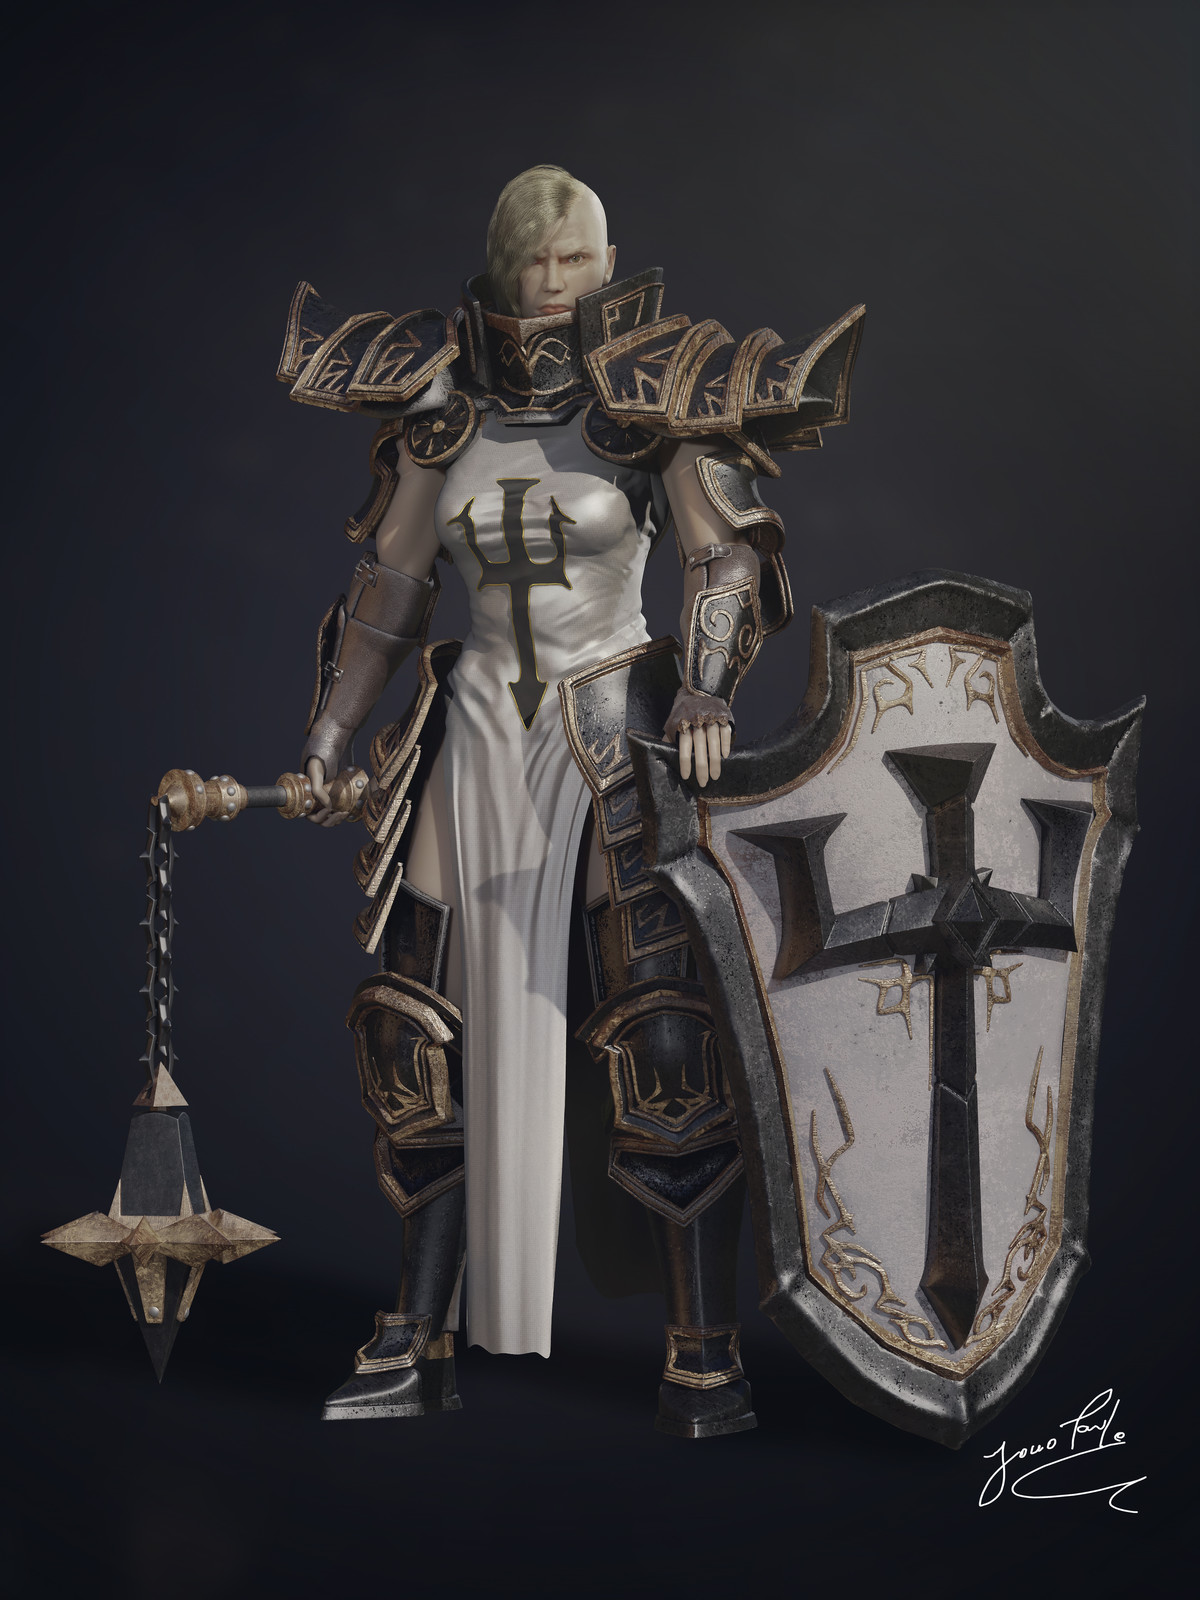 Johanna, the crusader |Fanart - Blizzard games